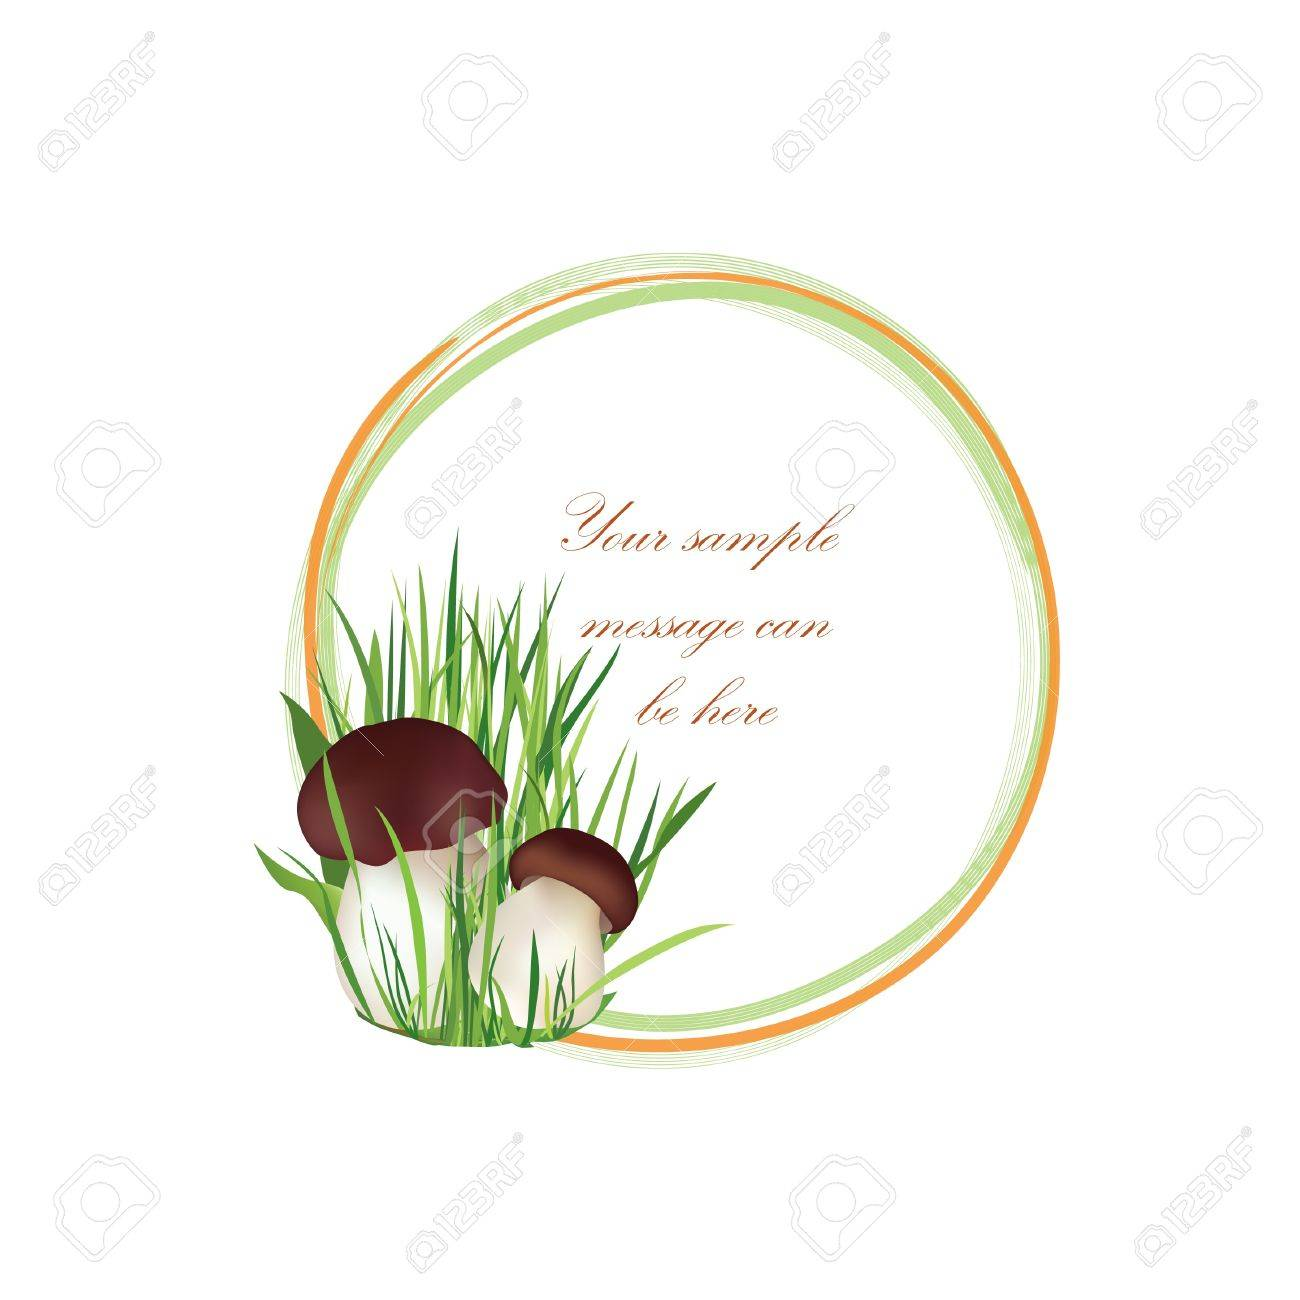 Mushrooms vector frame  Boletus background with copy space  Floral decor isolated on white background Food illustration Stock Vector - 21604214